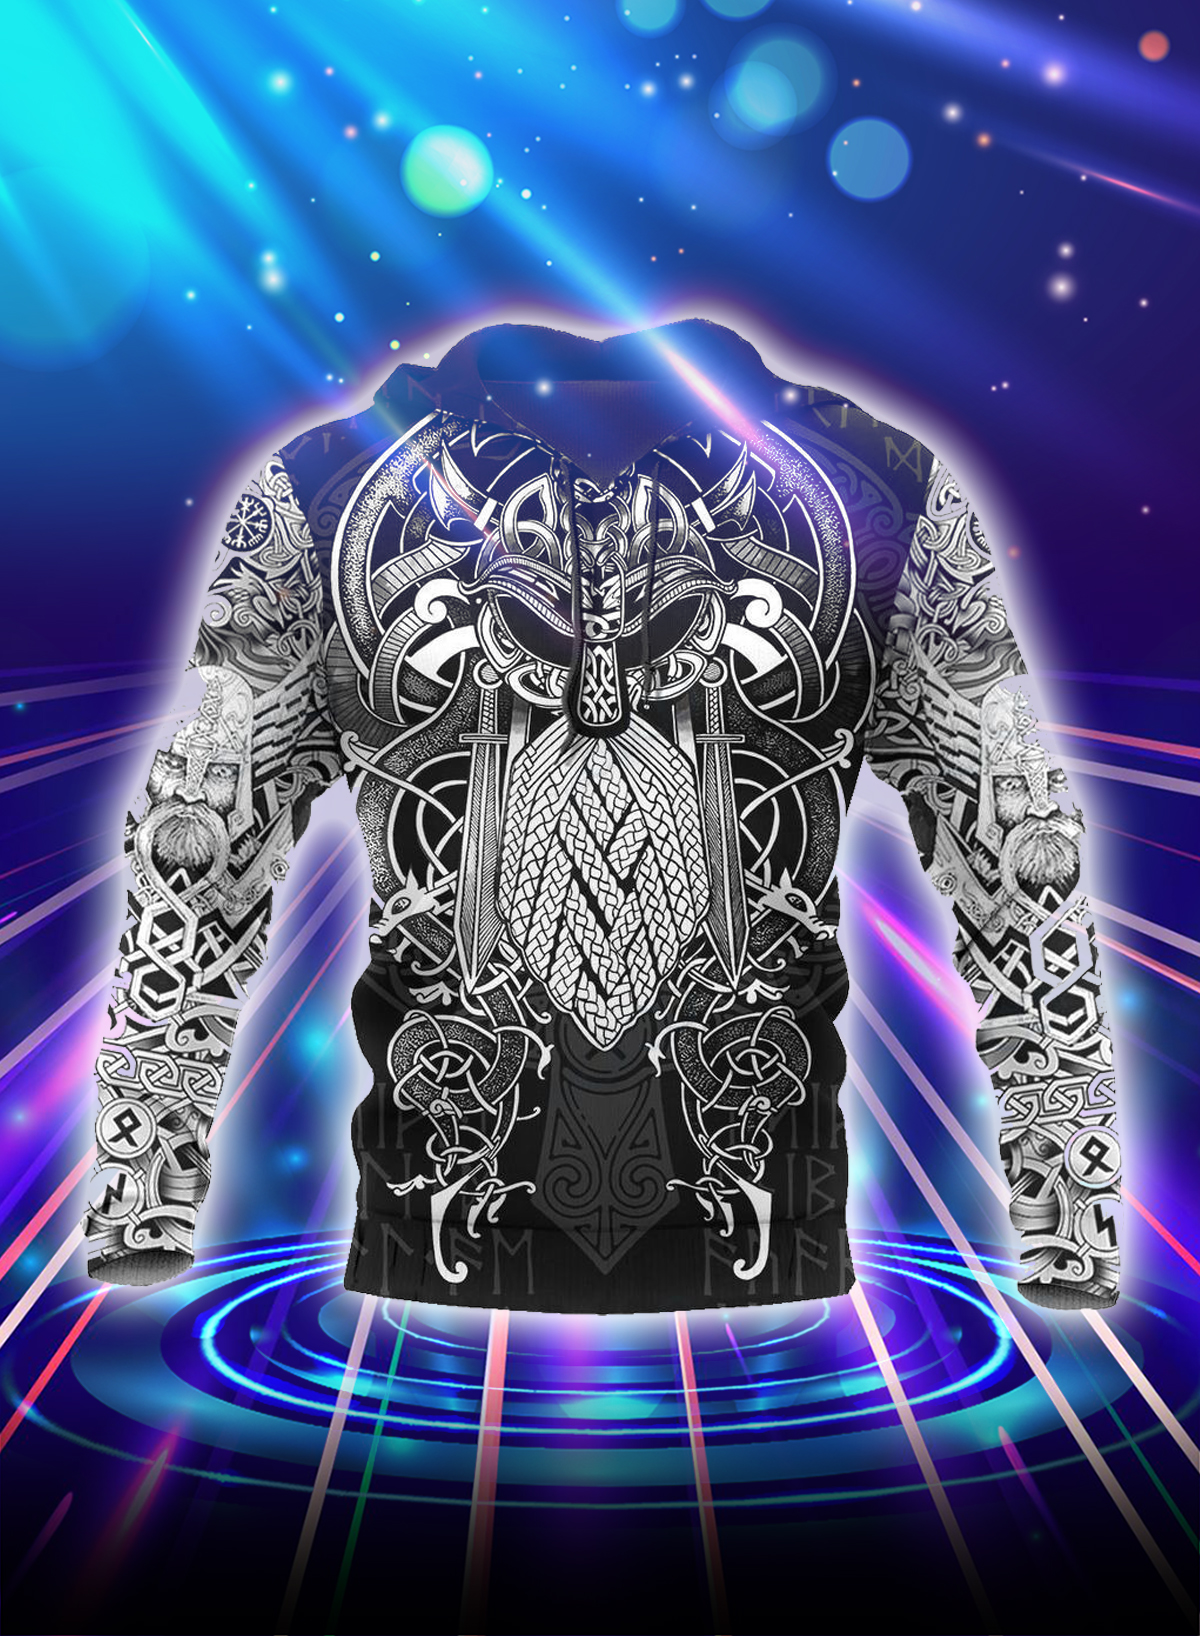 Vikings odin tattoo style all over printed hoodie